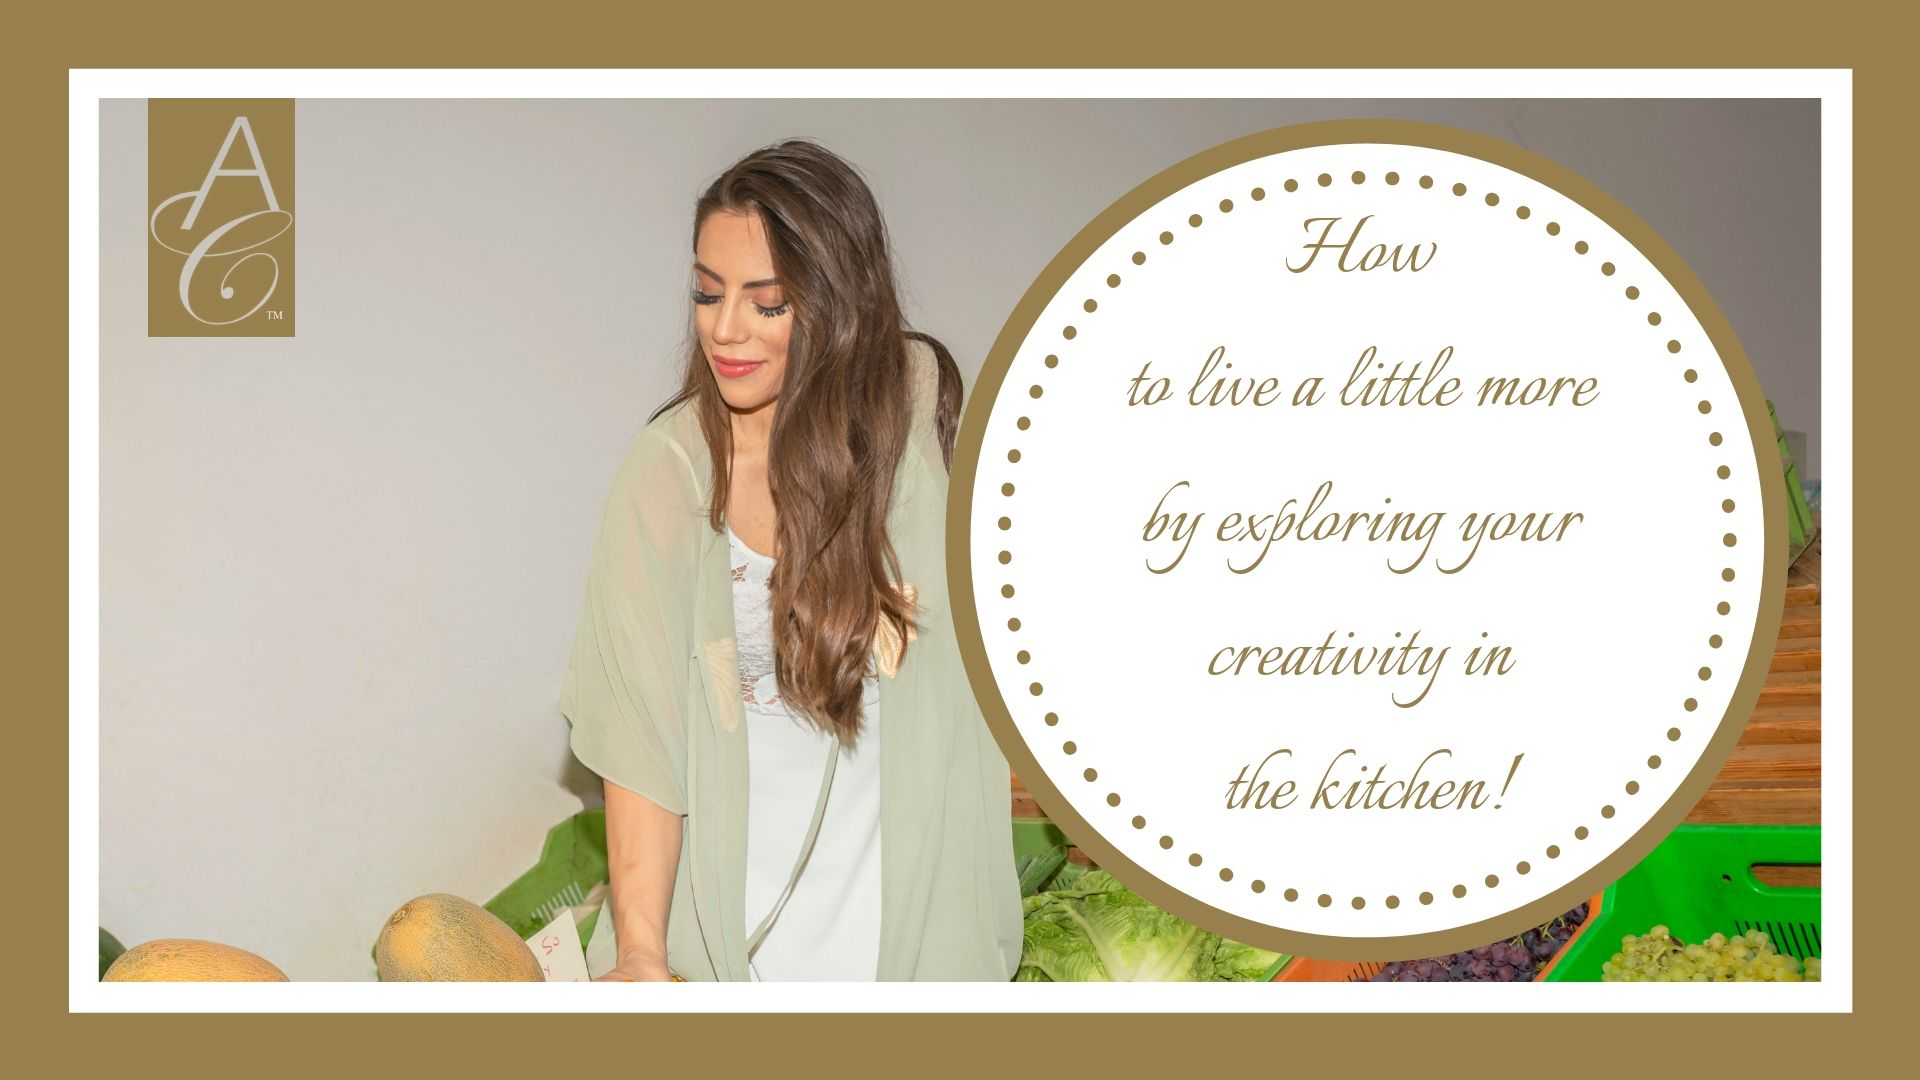 How to live a little more by exploring your creativity in the kitchen!